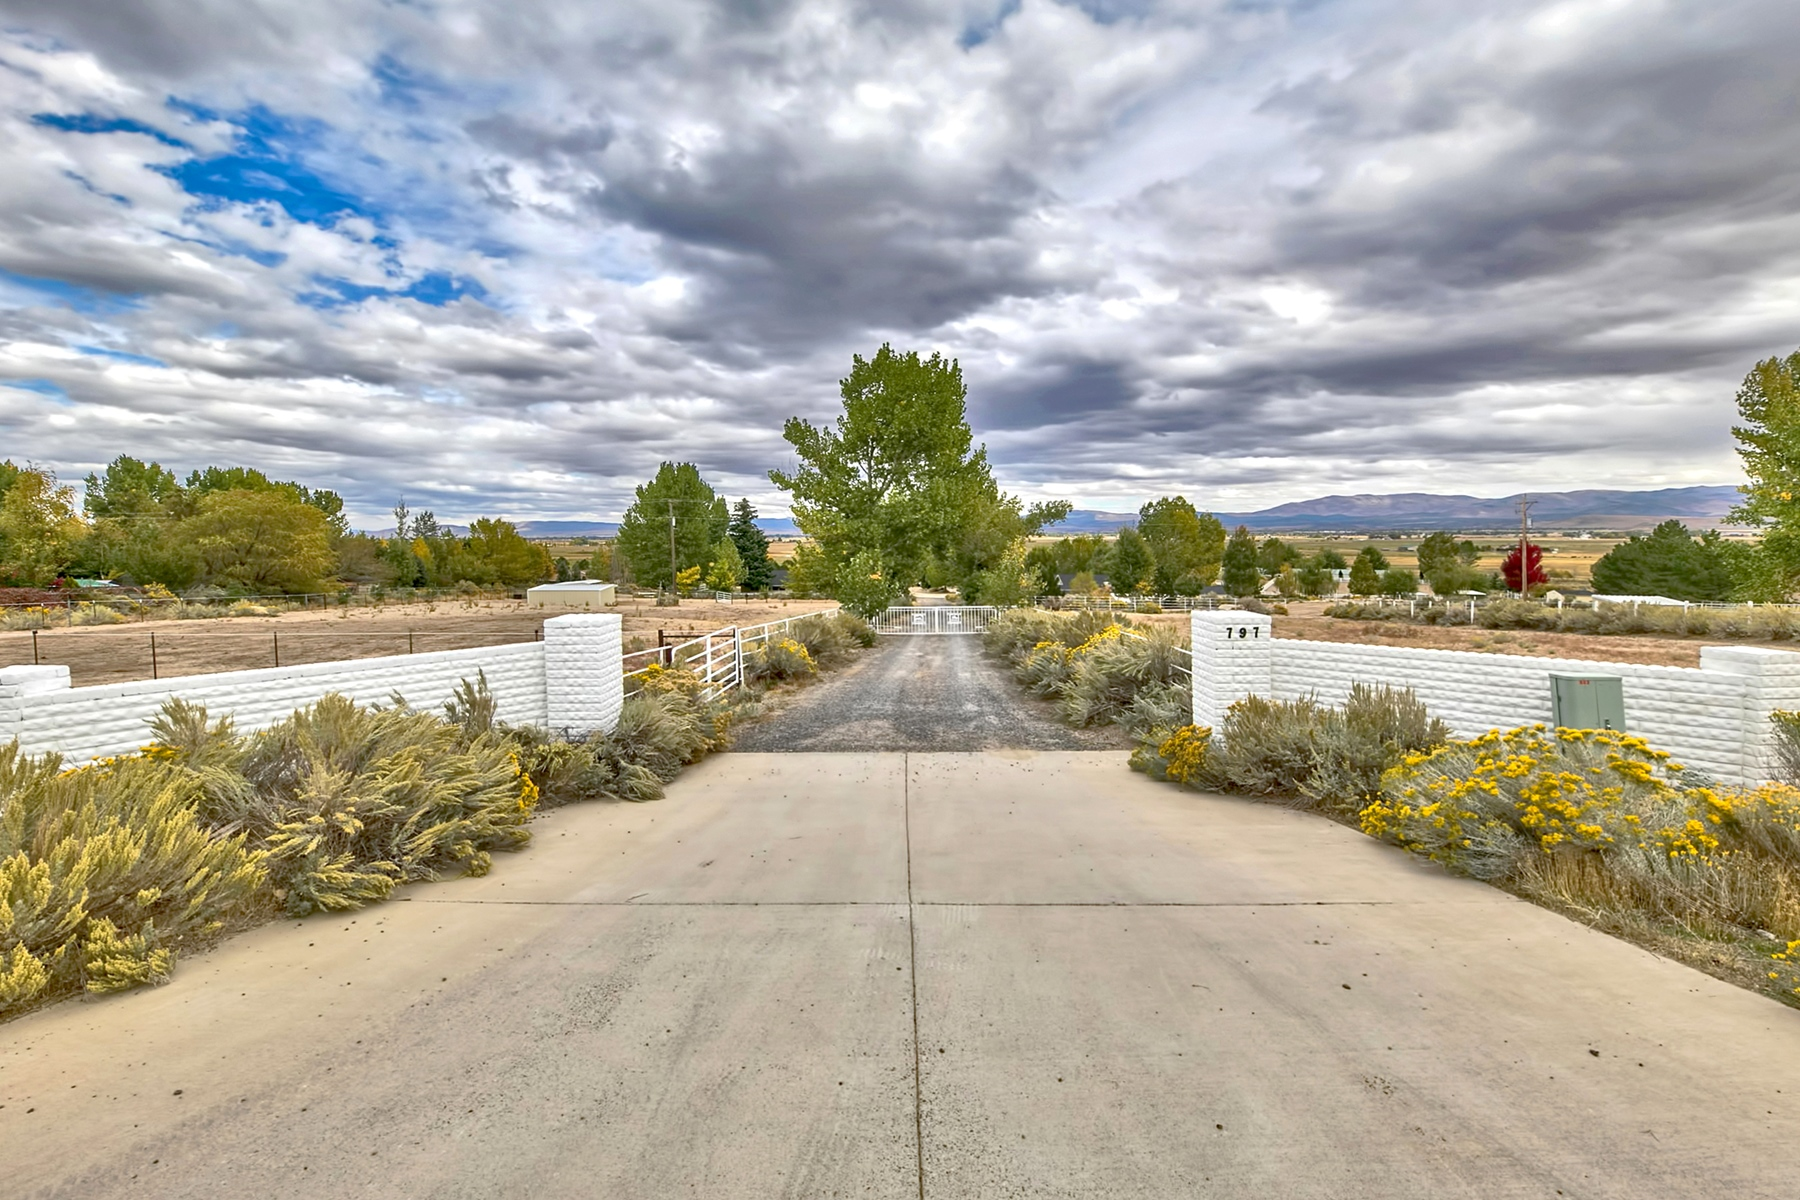 Additional photo for property listing at 462 Alex Court, Gardnerville, Nevada 462 Alex Court Gardnerville, Nevada 89410 United States